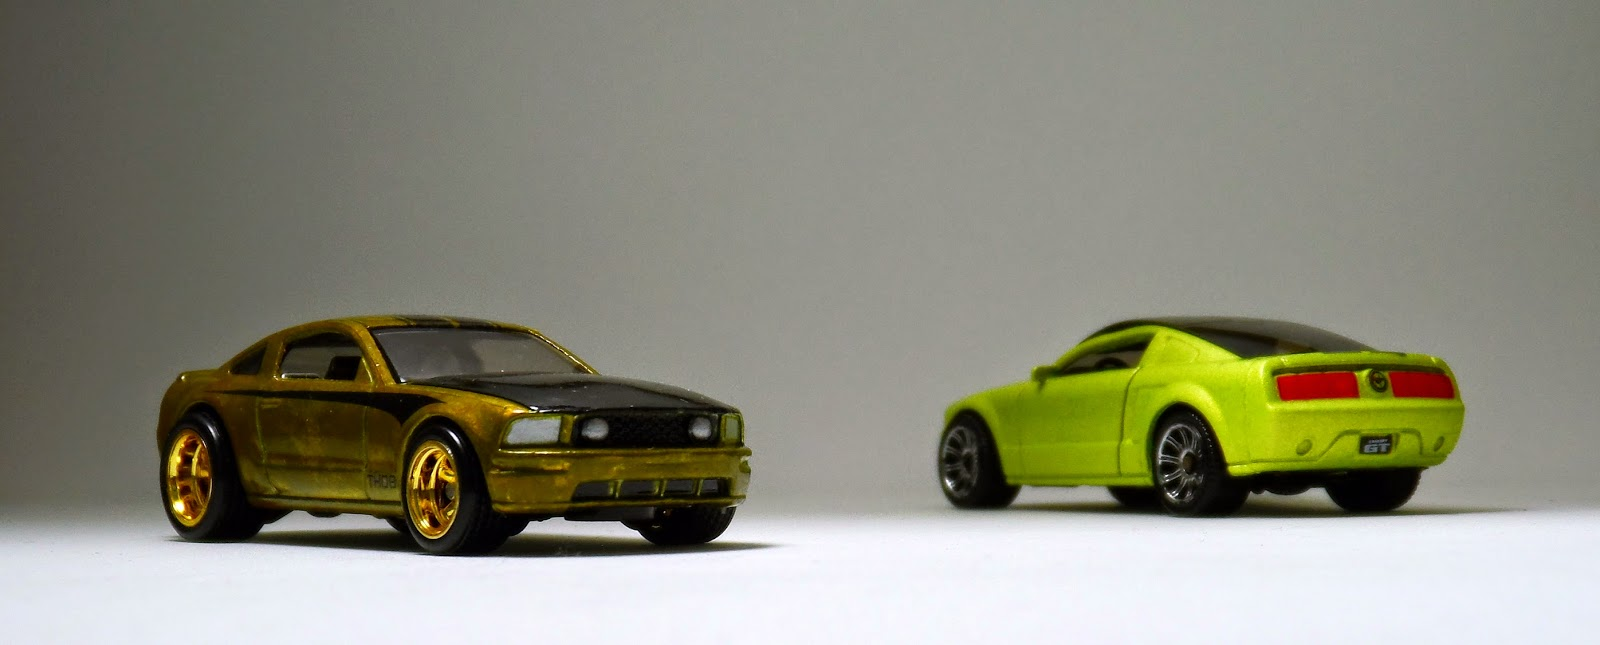 Especial Ford Mustang 50 anos - Parte III